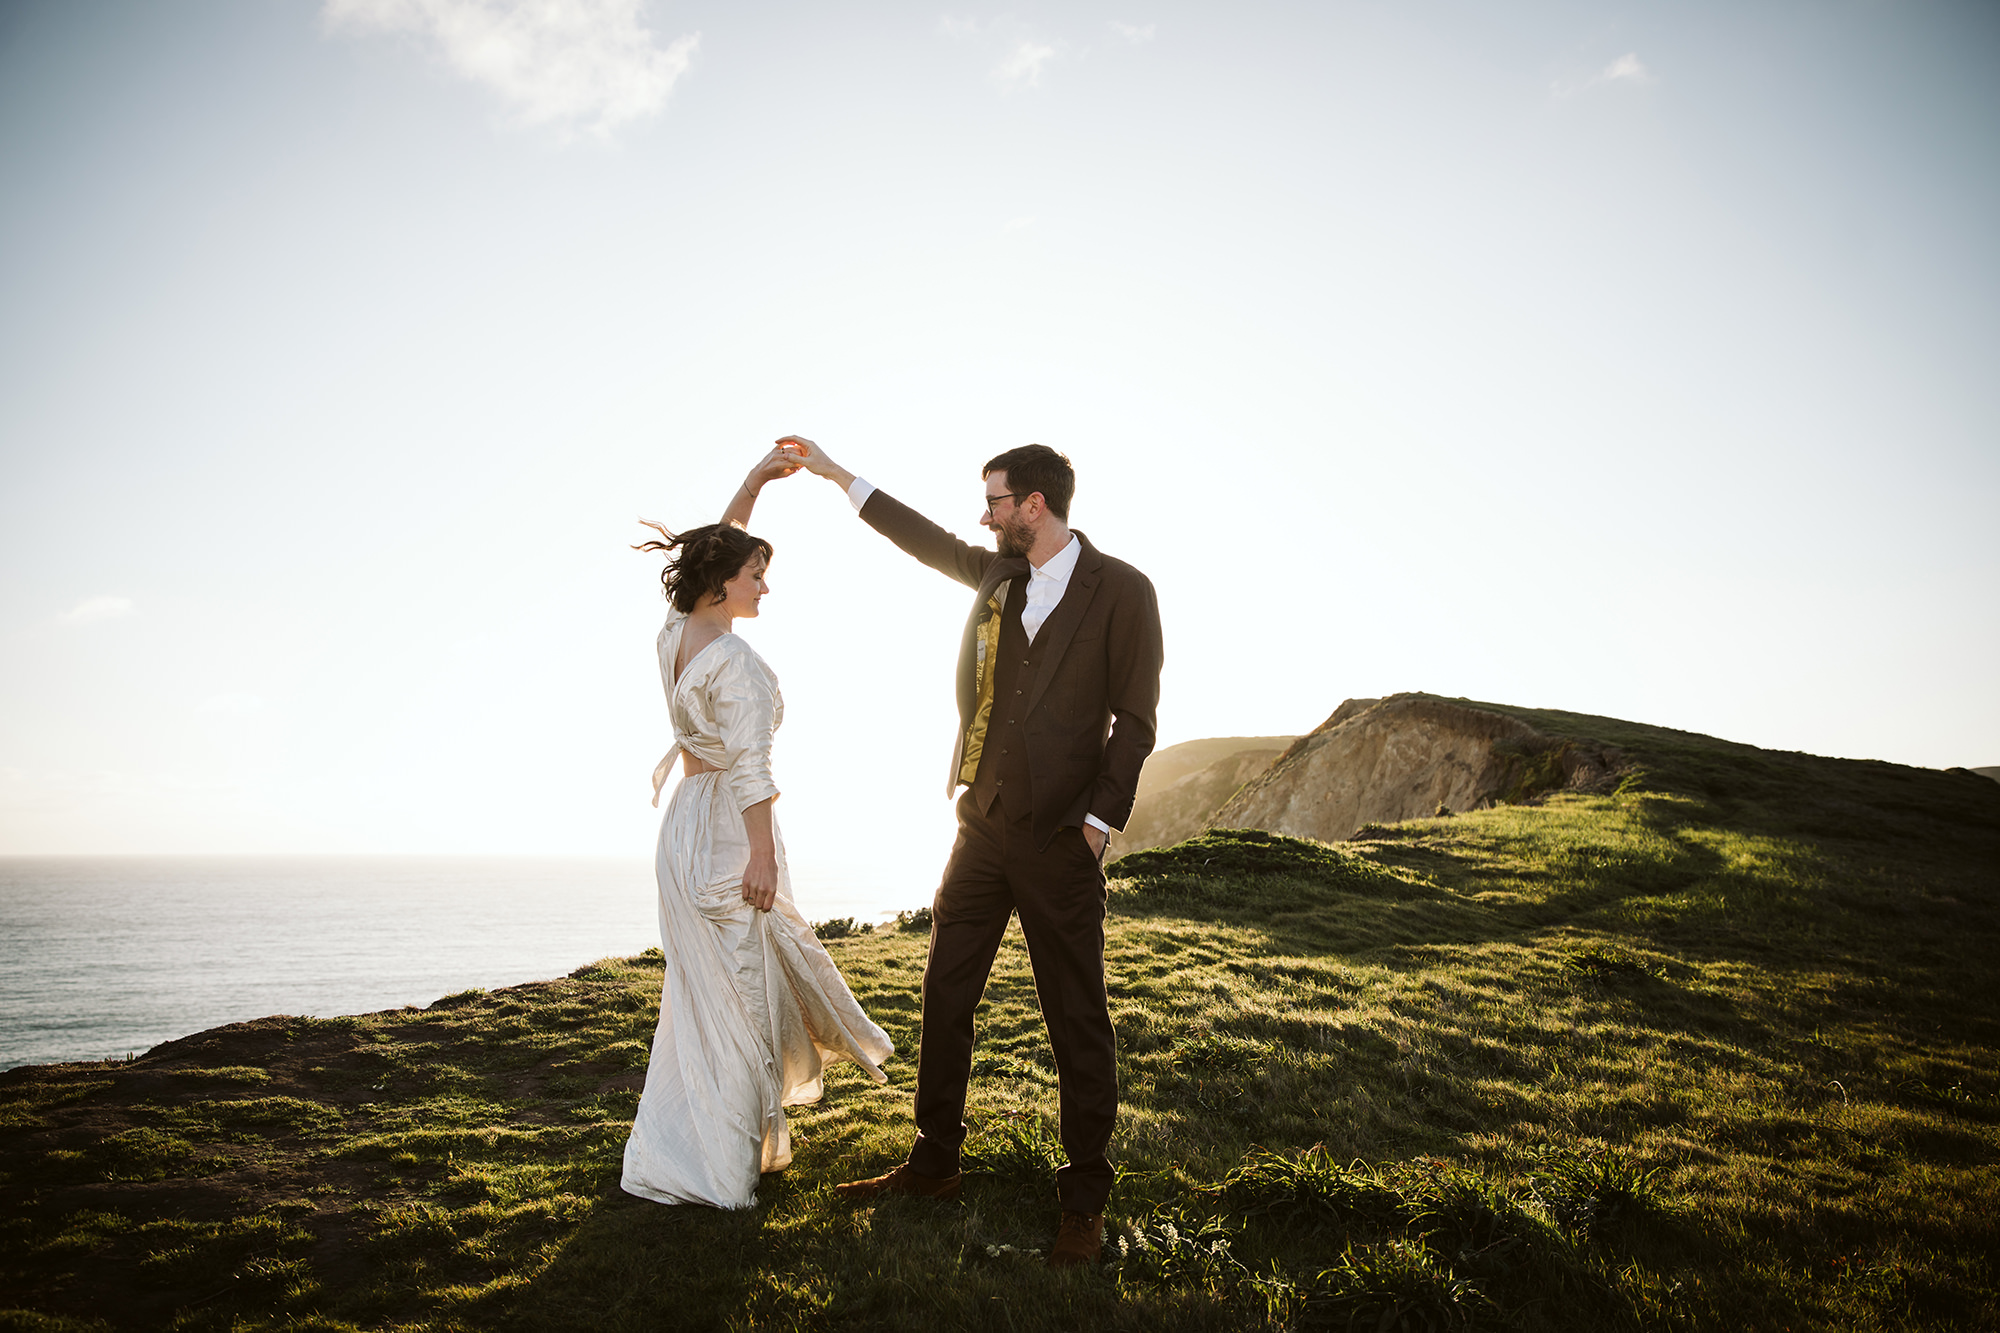 Groom twirling bride in the sunset during their Point Reyes elopement.